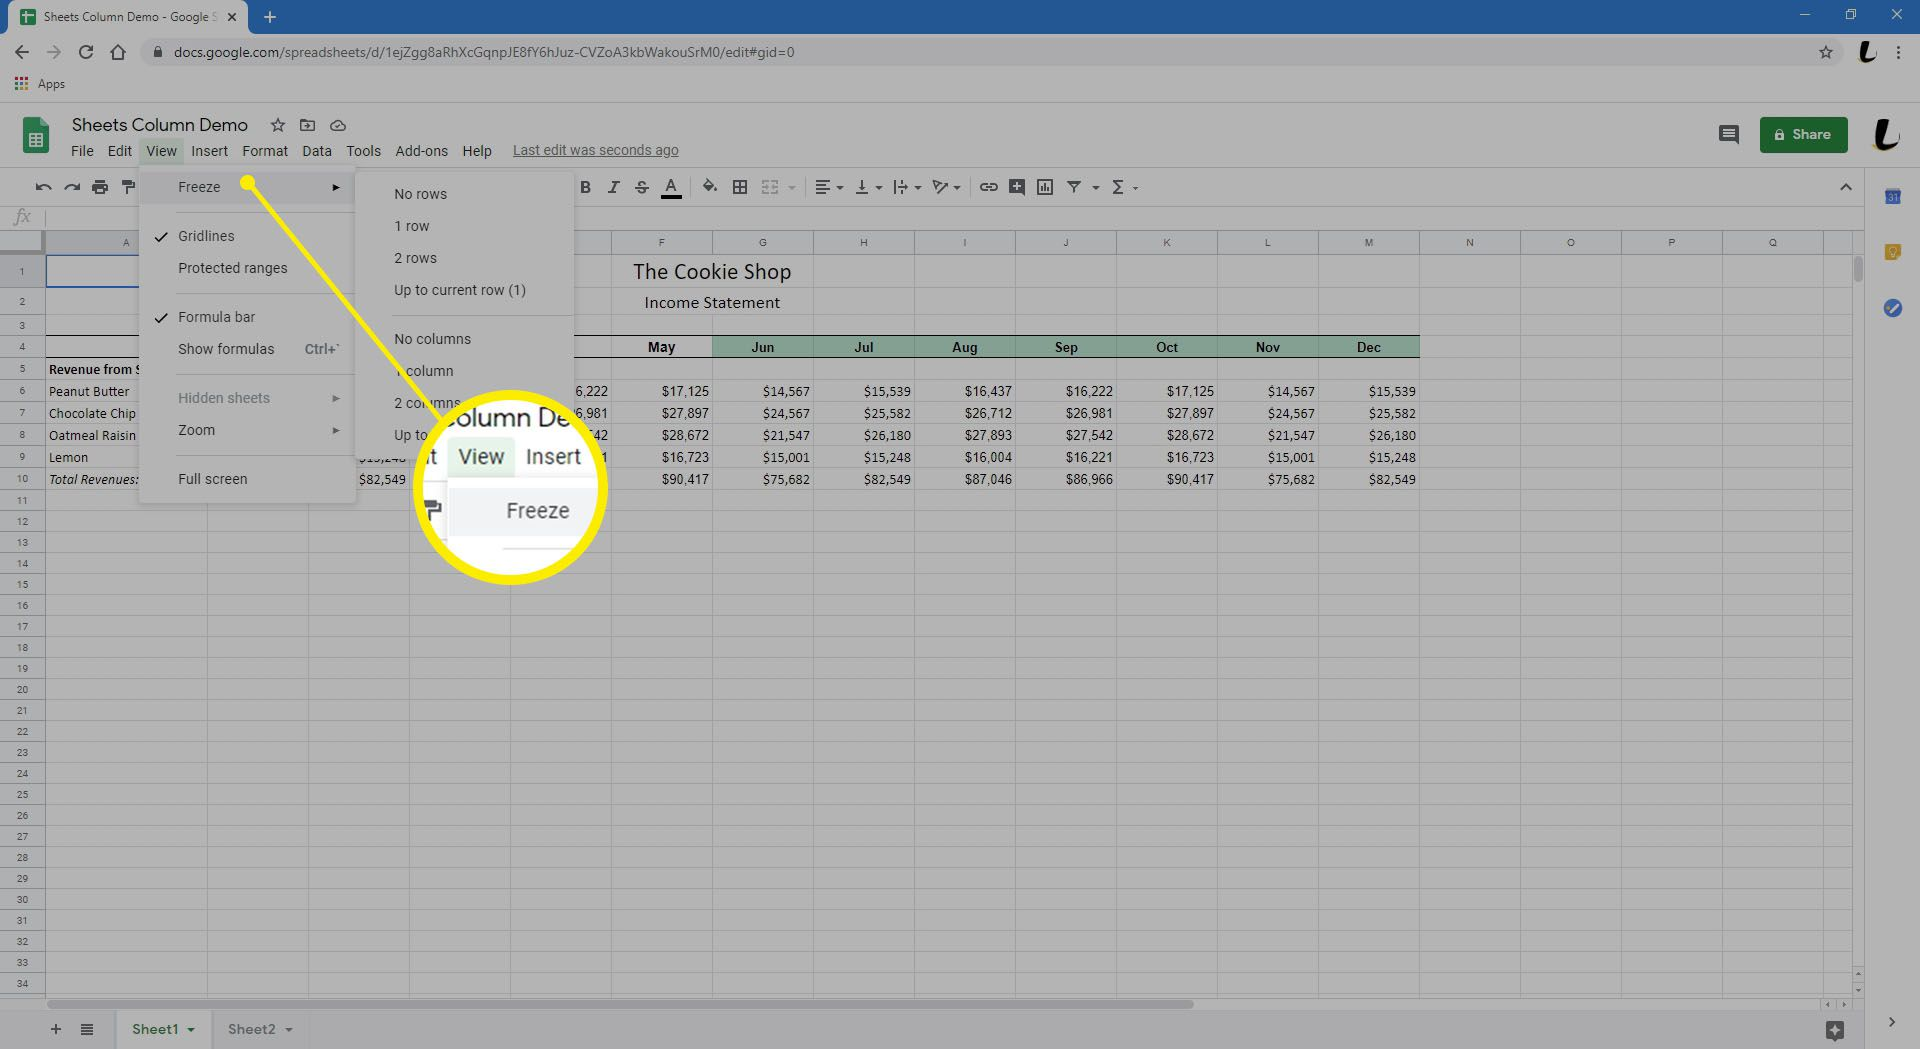 Google Sheets is showing a spreadsheet populated with data.